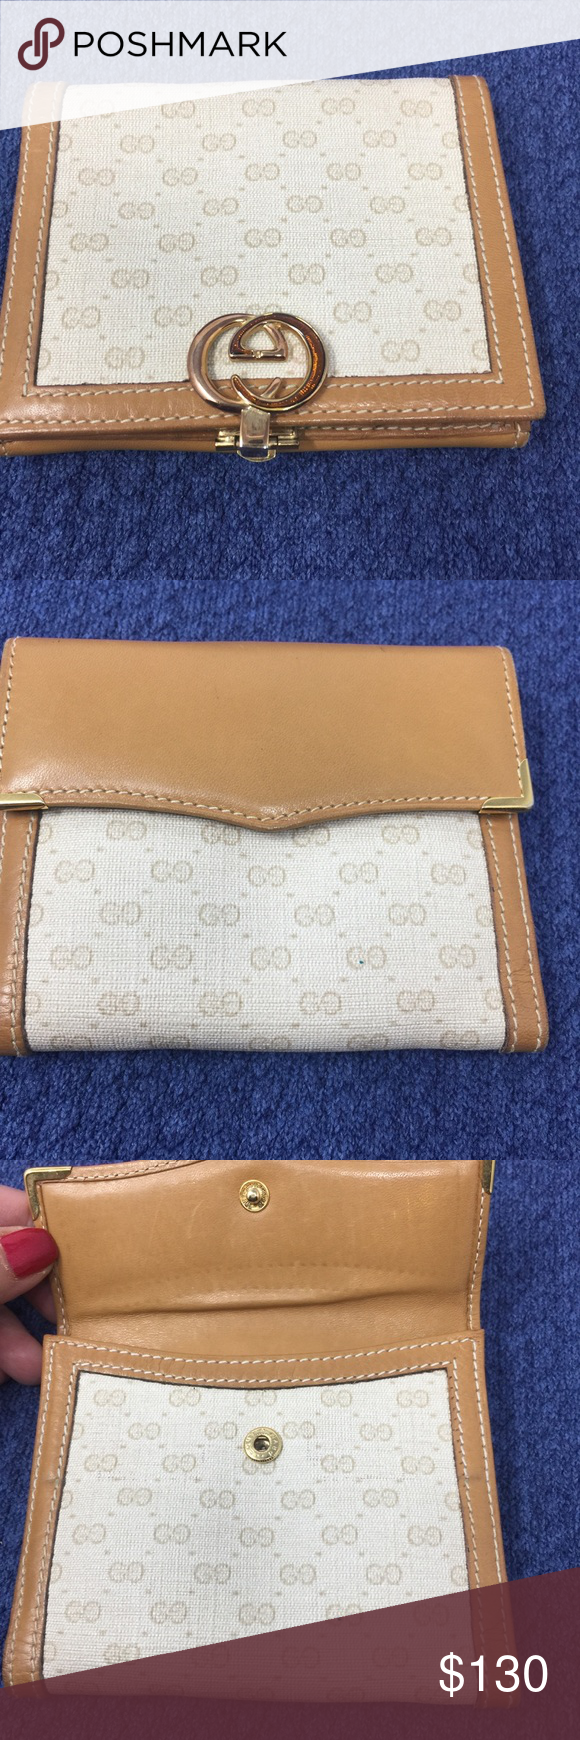 5d3cf3549 Preowned Authentic Gucci Wallet Condition: preowned, authentic Gucci Wallet  Made in Italy Serial Numbers: 035-922-7014 Outside: clean , Insider: clean  ...